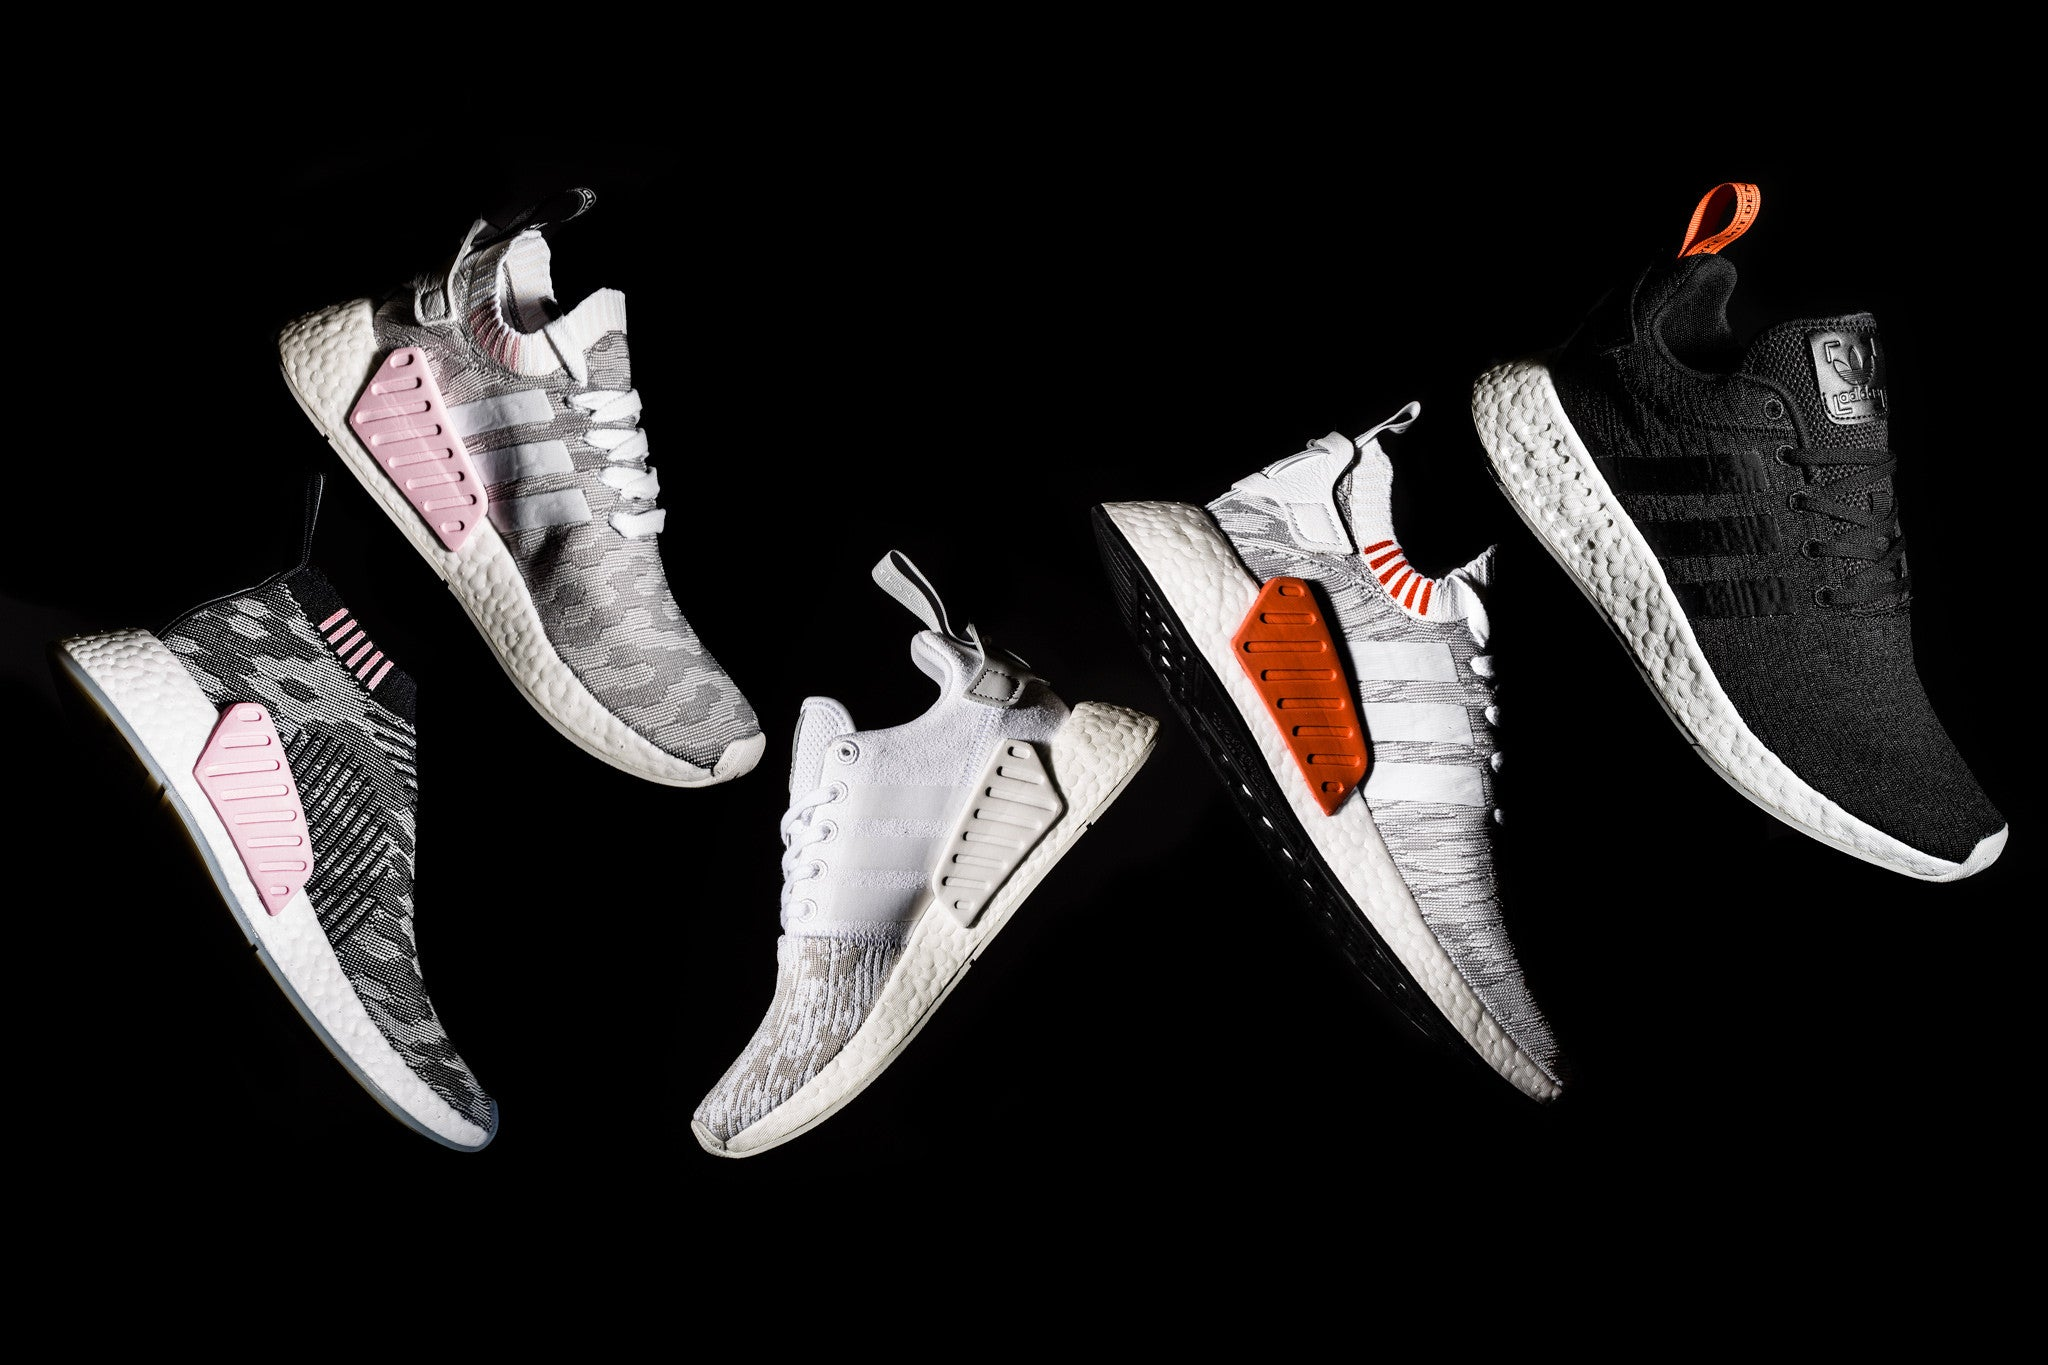 adidas NMD Summer Collection 07.13.17 - Capsule Online